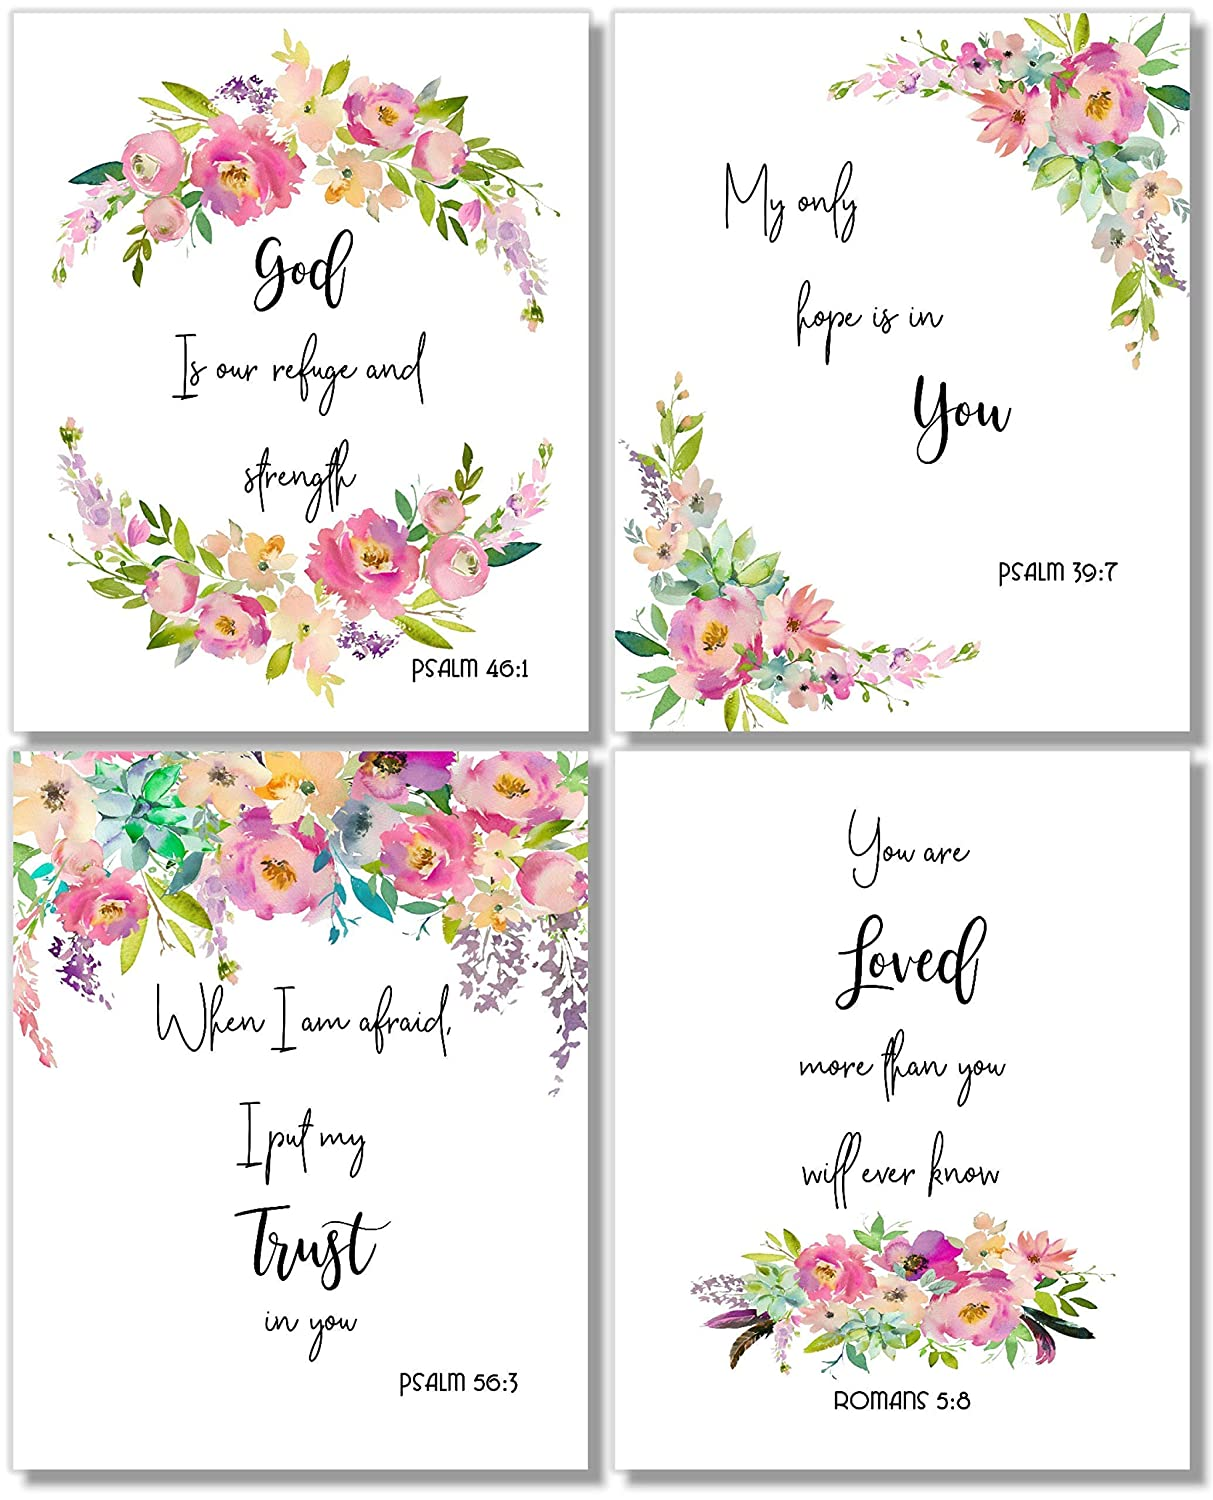 Inspirational Wall Art - God is Our Refuge (Set of 4) - Christian Wall Decor - 8x10 - Unframed